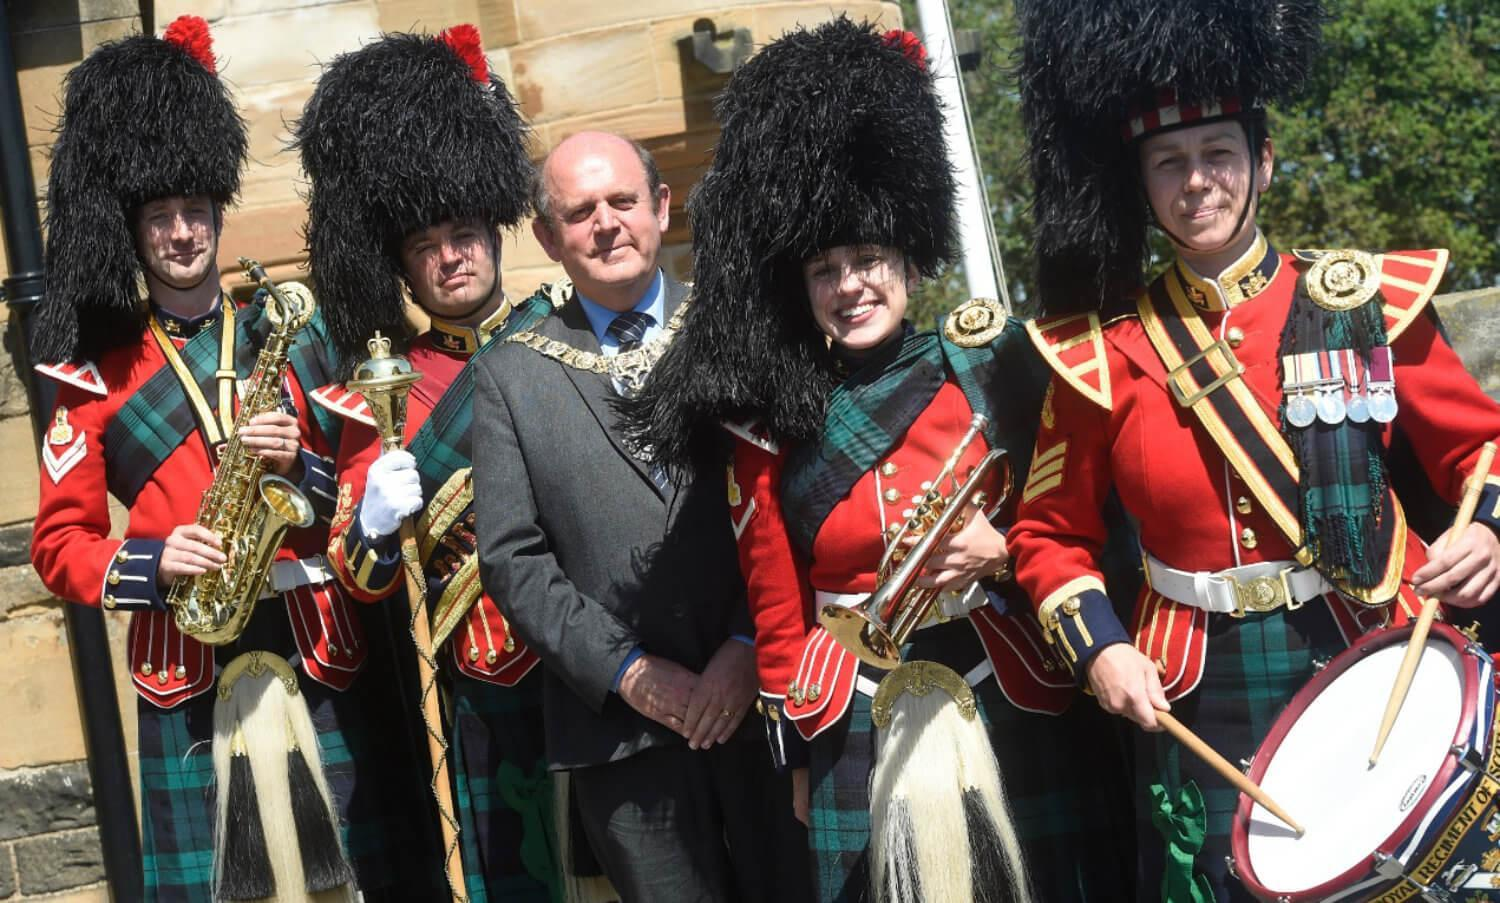 The Lord Provost with Pipers at 2018 Remembrance Service